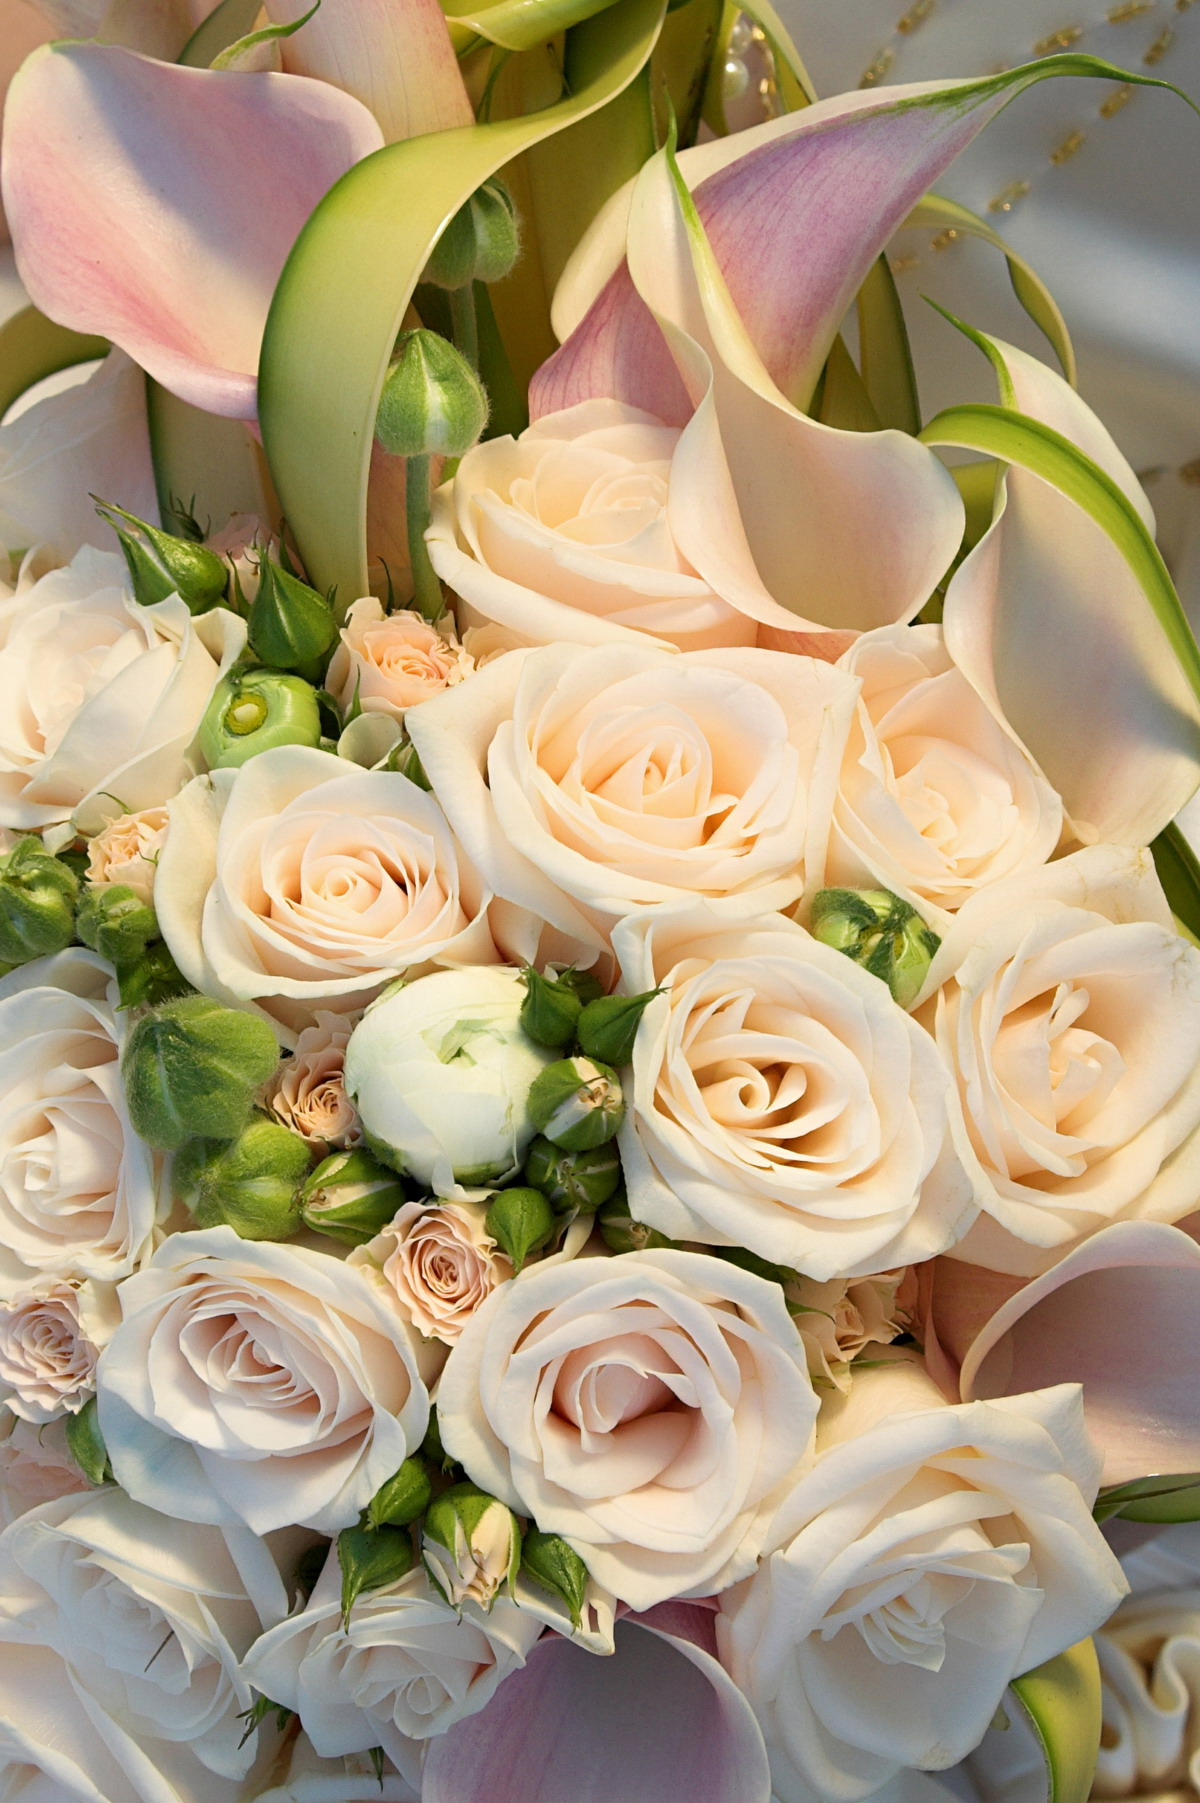 Wedding Flowers Wallpapers 13783